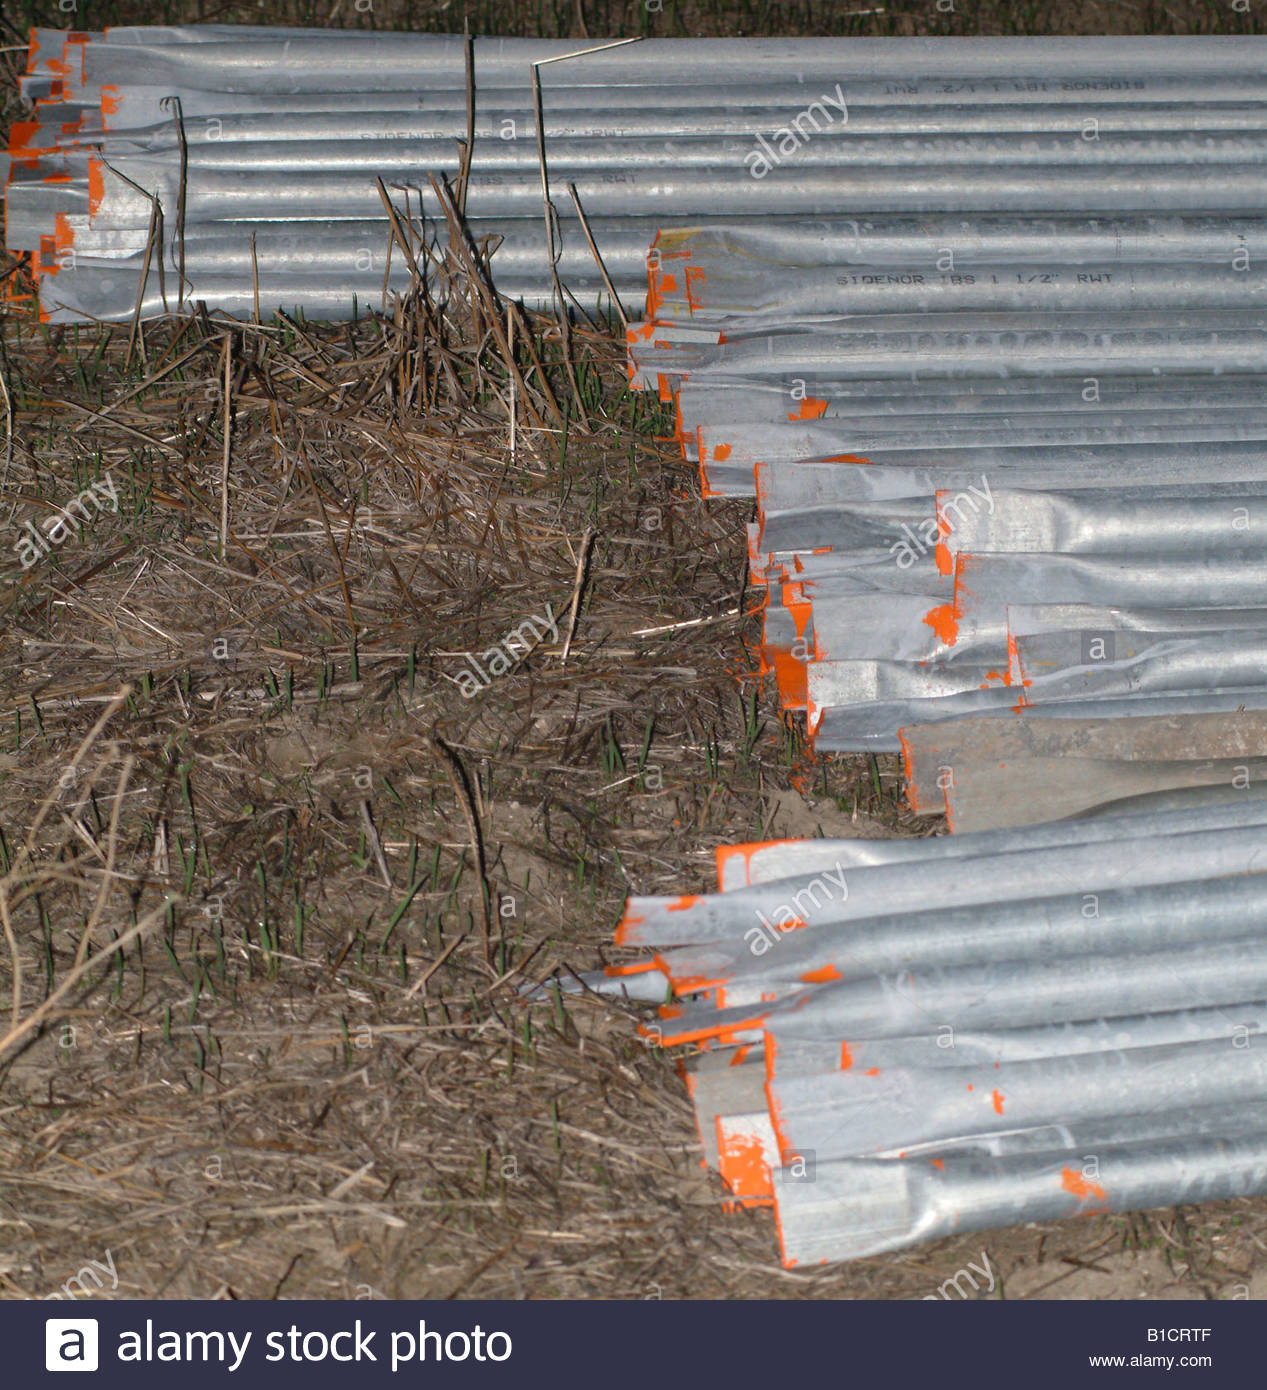 pipe nobody objects outdoor pile pipes plumbing texture tubes tubing ...